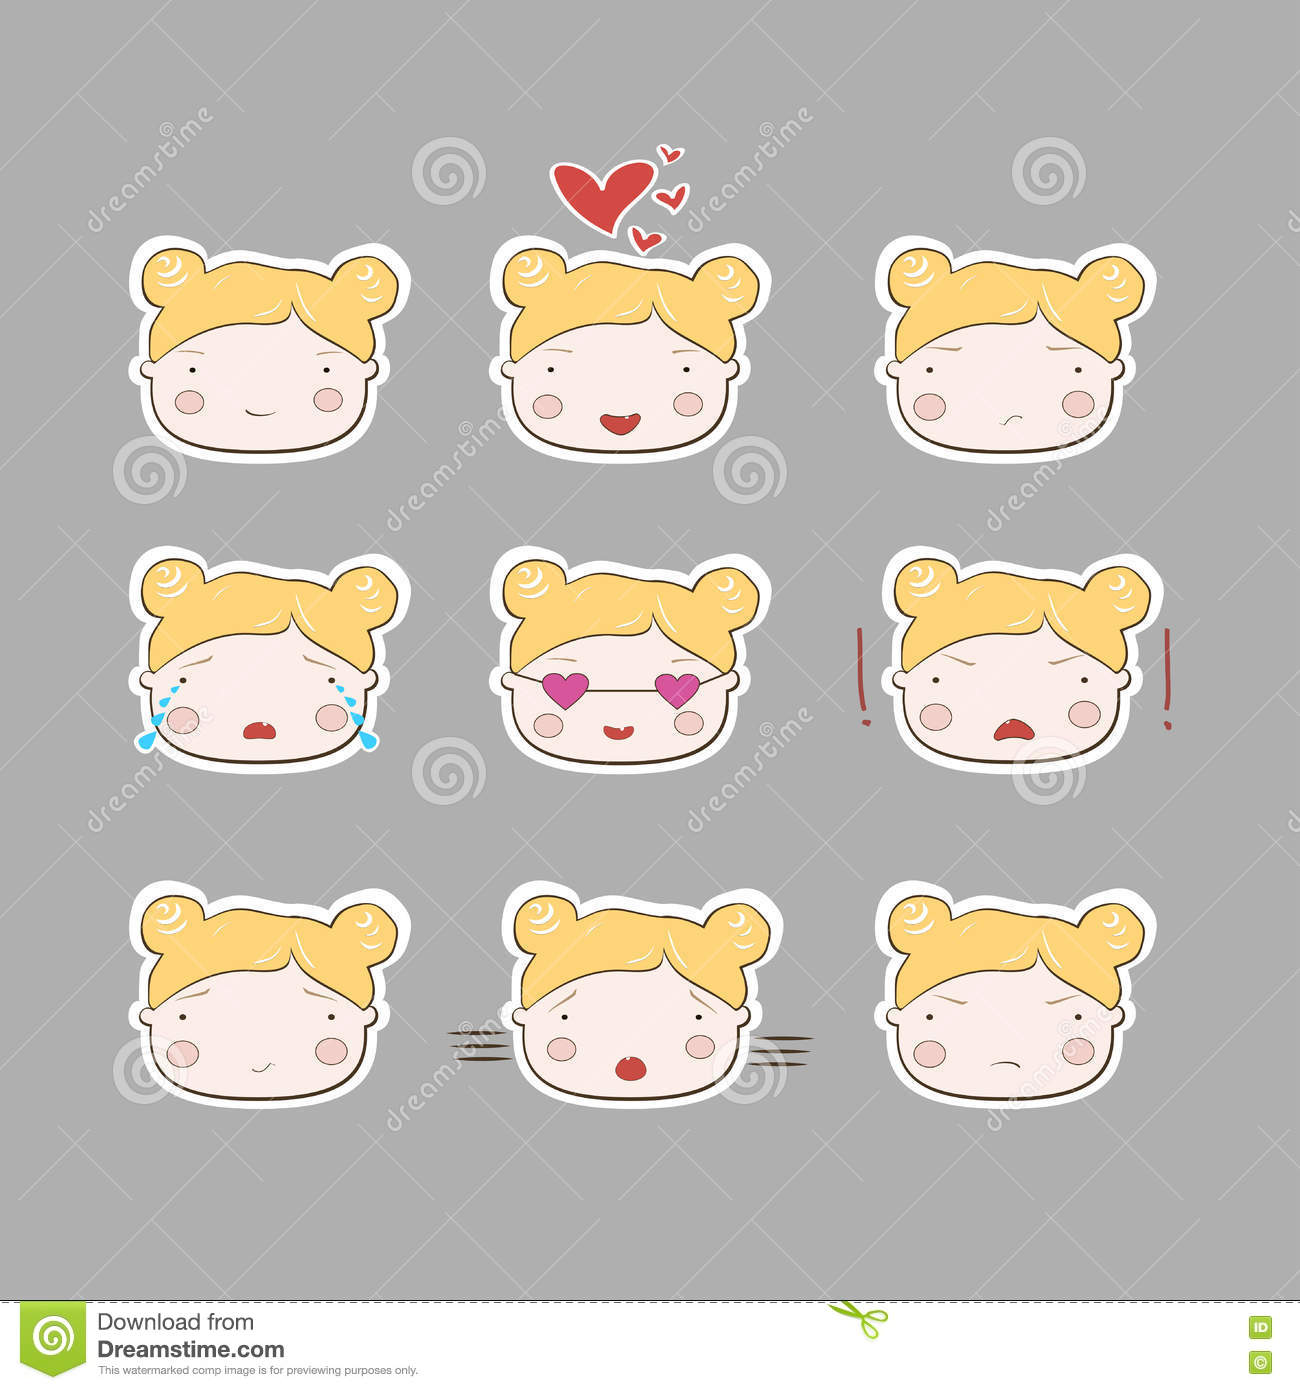 Baby girl clipart cimple graphic transparent Cute Simple Drawing Blonde Baby Girl Emotions Set Stock Vector ... graphic transparent